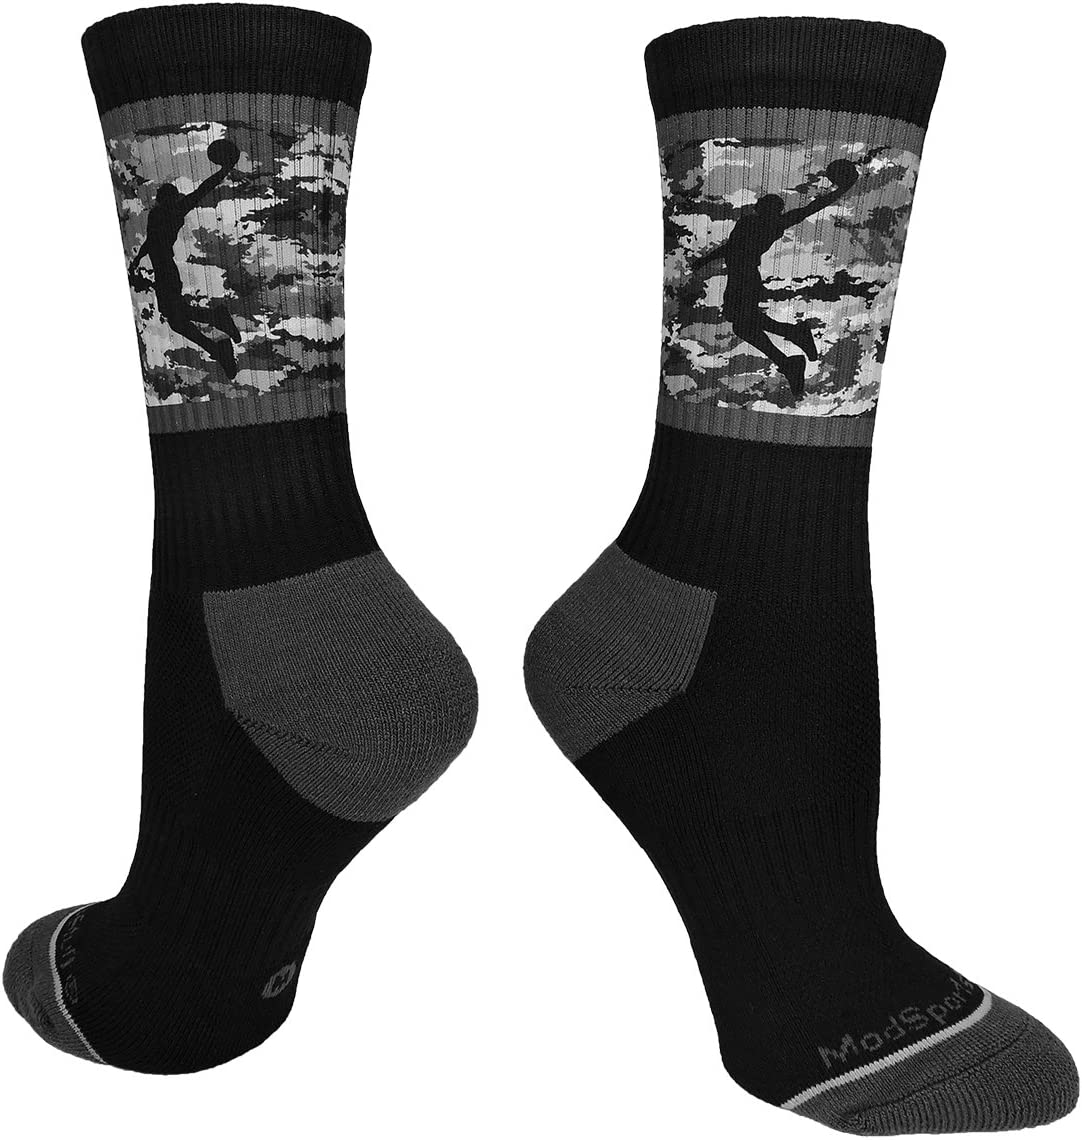 MadSportsStuff Basketball Socks with Player on Camo Athletic Crew Socks (Multiple Colors)